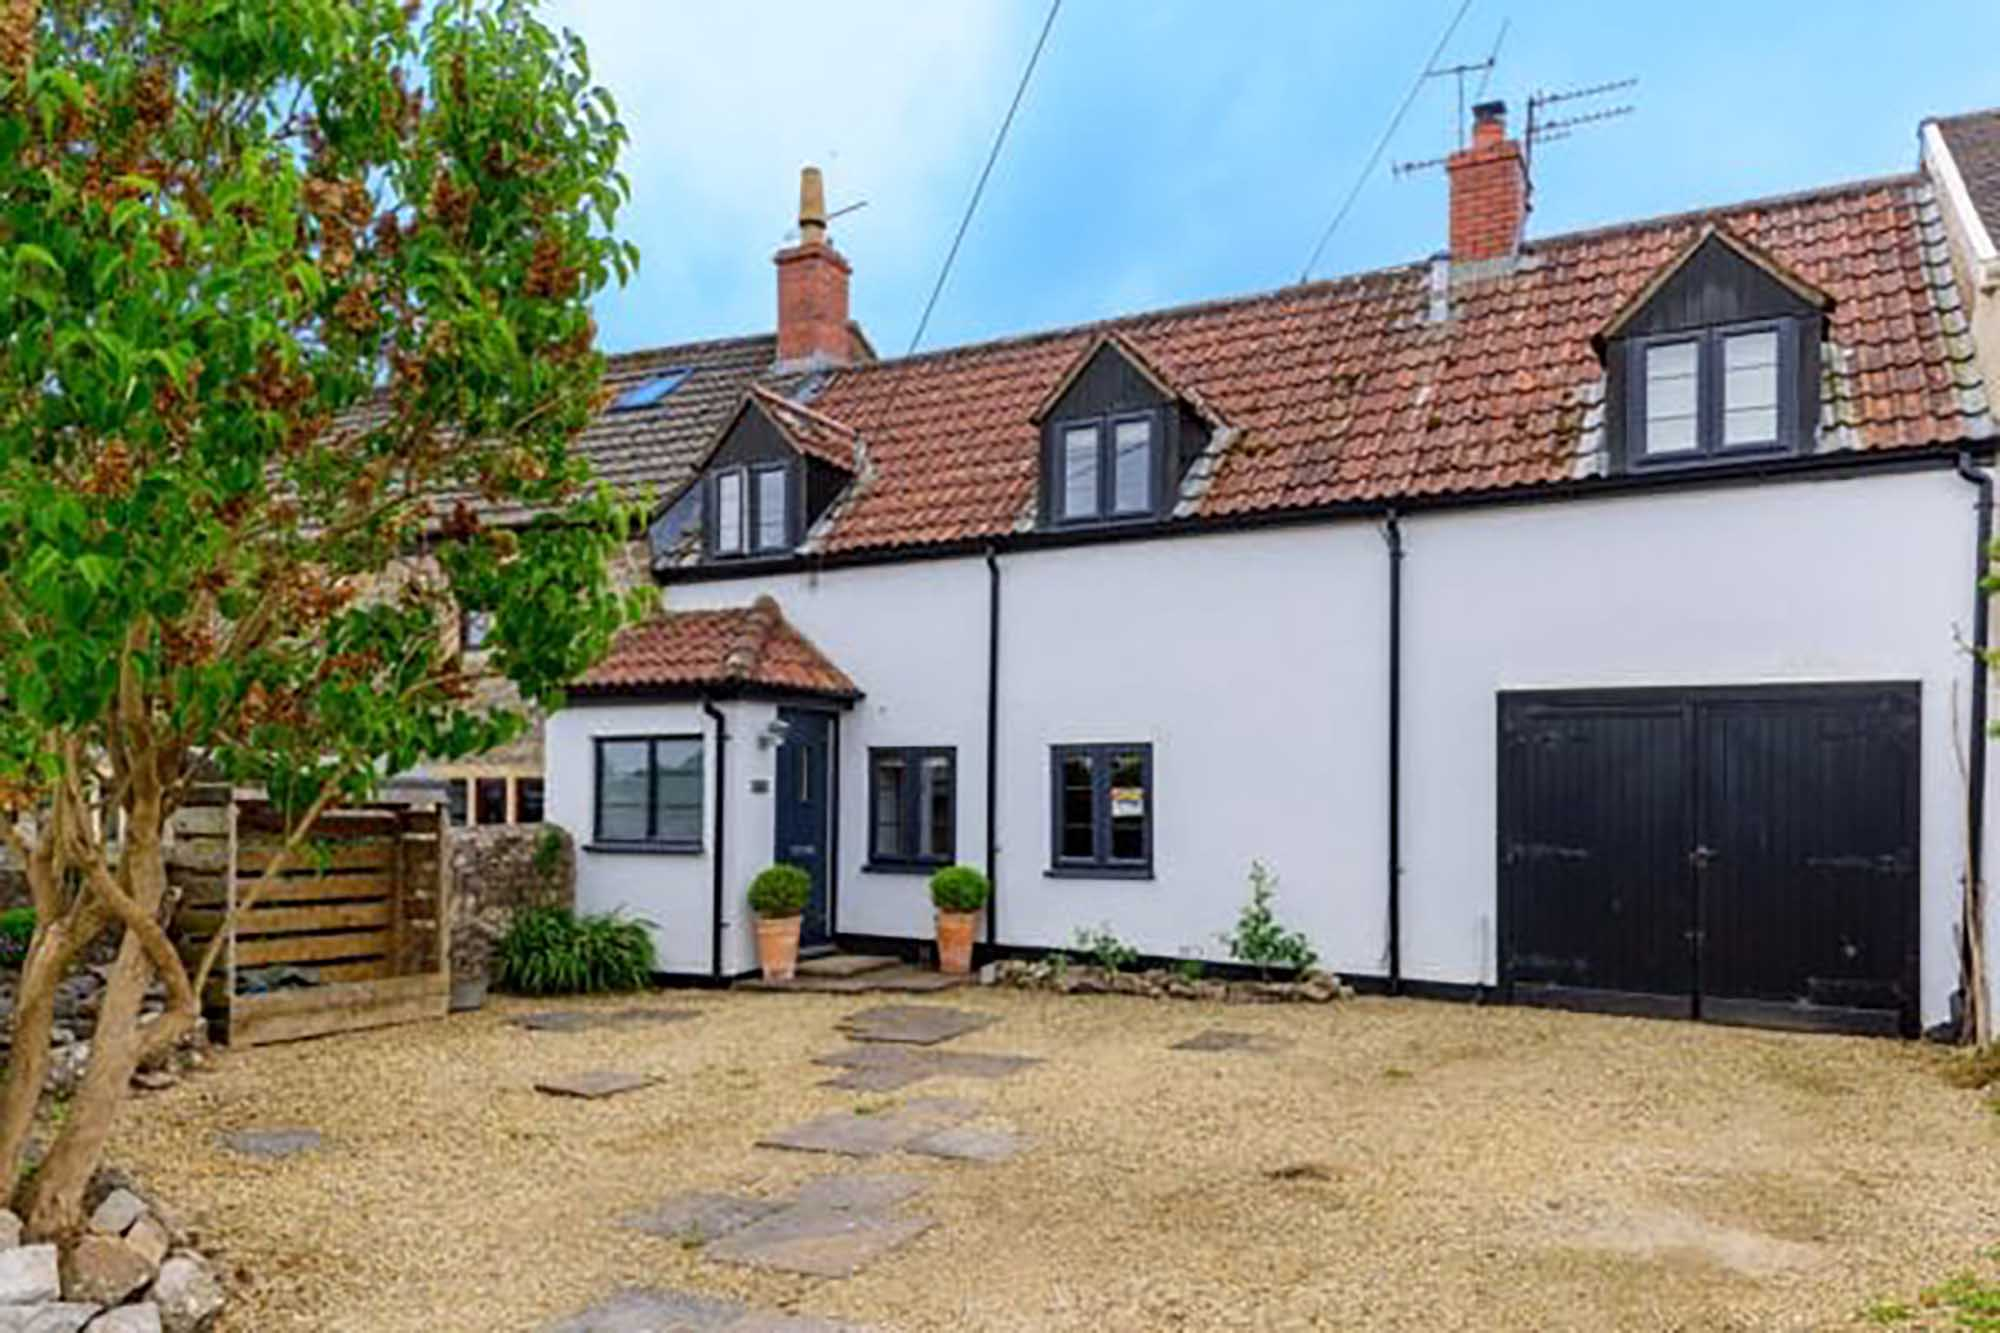 4 bed home, fabulous kitchen, parking and garden